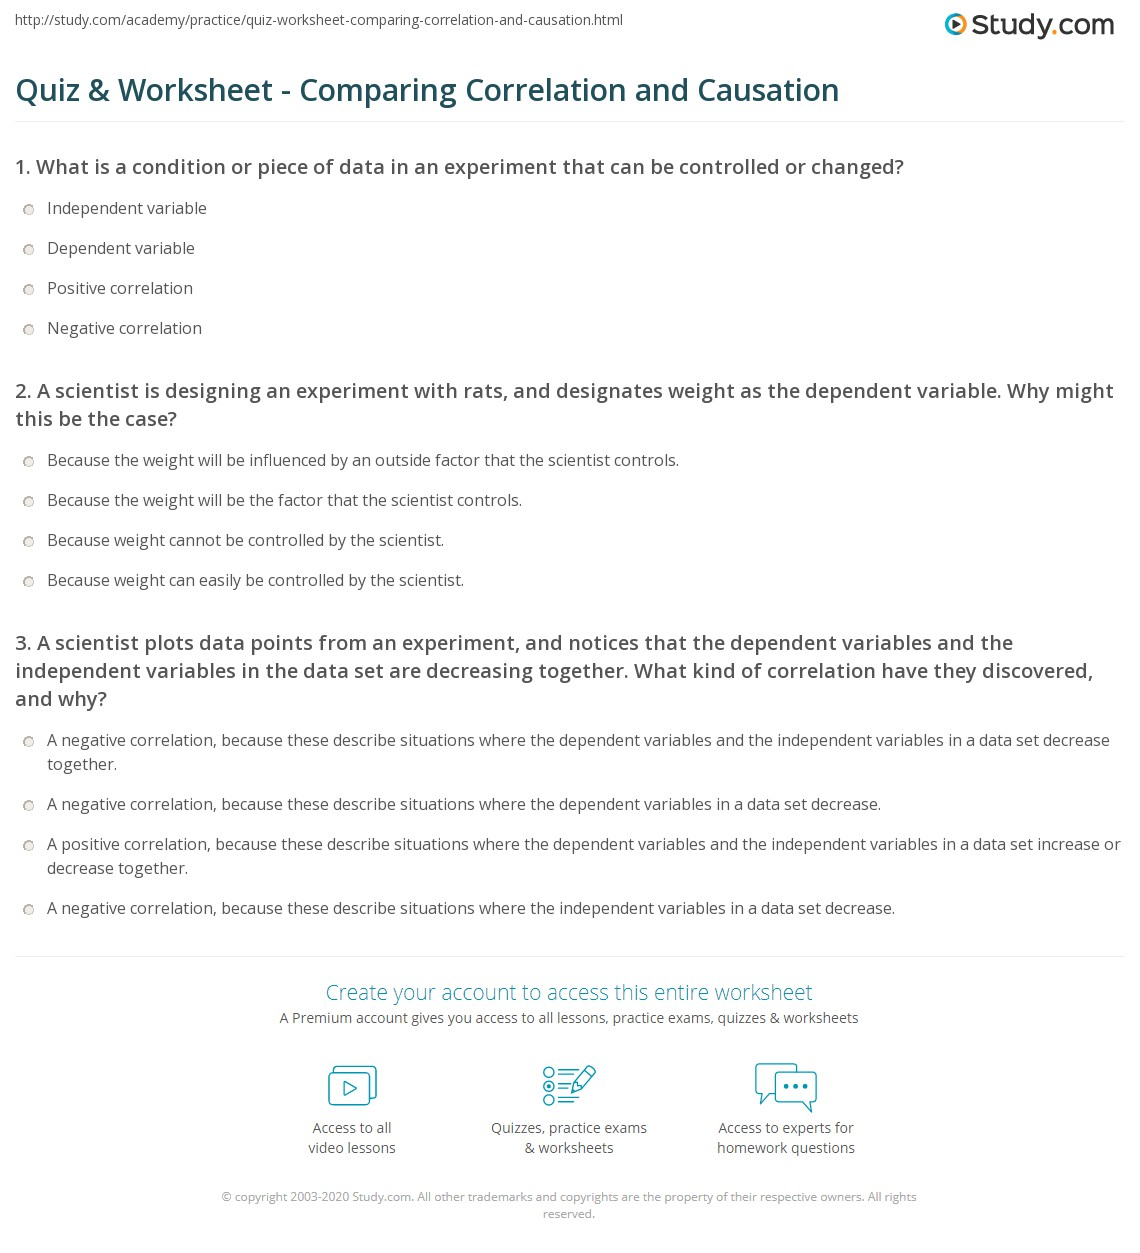 Aldiablosus  Pretty Quiz Amp Worksheet  Comparing Correlation And Causation  Studycom With Lovely Print Correlation Vs Causation Differences Amp Definition Worksheet With Comely Adjective Worksheet For Kids Also Letter M Writing Worksheets In Addition Suffix Ful And Less Worksheets And Liquid Volume Worksheet As Well As Different Types Of Clouds Worksheet Additionally Proper Noun Worksheet Nd Grade From Studycom With Aldiablosus  Lovely Quiz Amp Worksheet  Comparing Correlation And Causation  Studycom With Comely Print Correlation Vs Causation Differences Amp Definition Worksheet And Pretty Adjective Worksheet For Kids Also Letter M Writing Worksheets In Addition Suffix Ful And Less Worksheets From Studycom